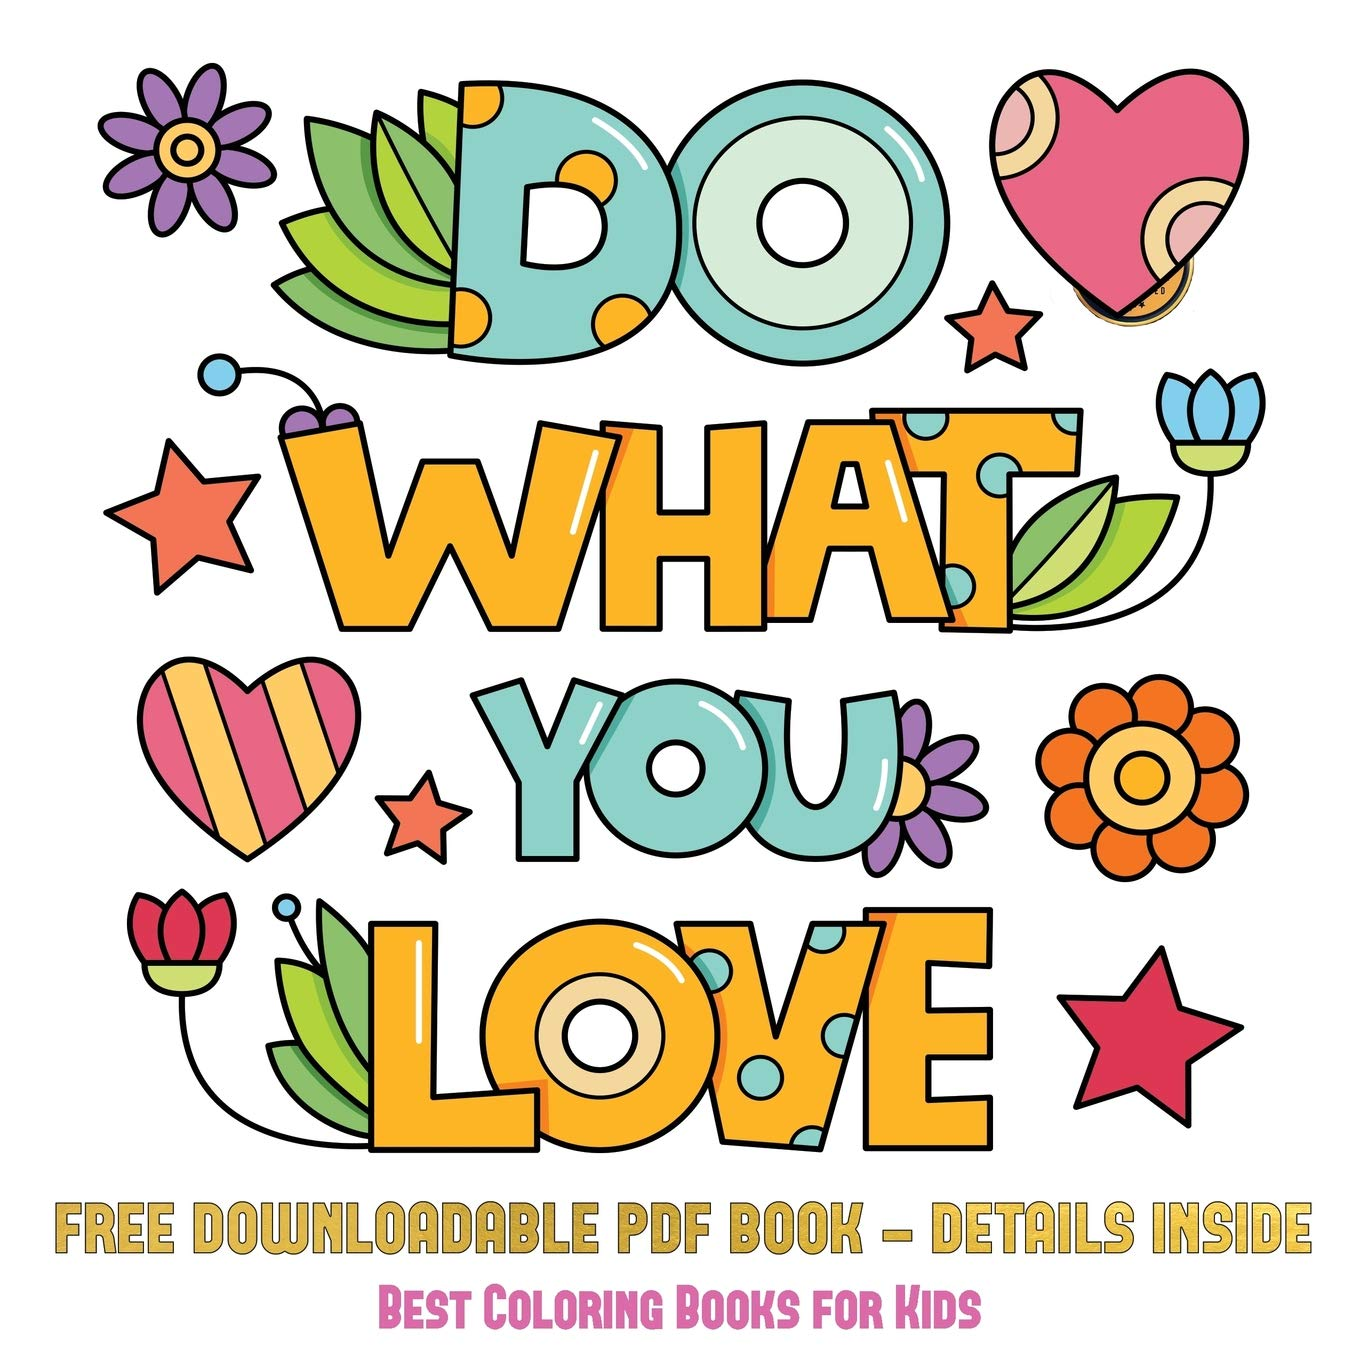 - Best Coloring Books For Kids (Do What You Love): 36 Coloring Pages